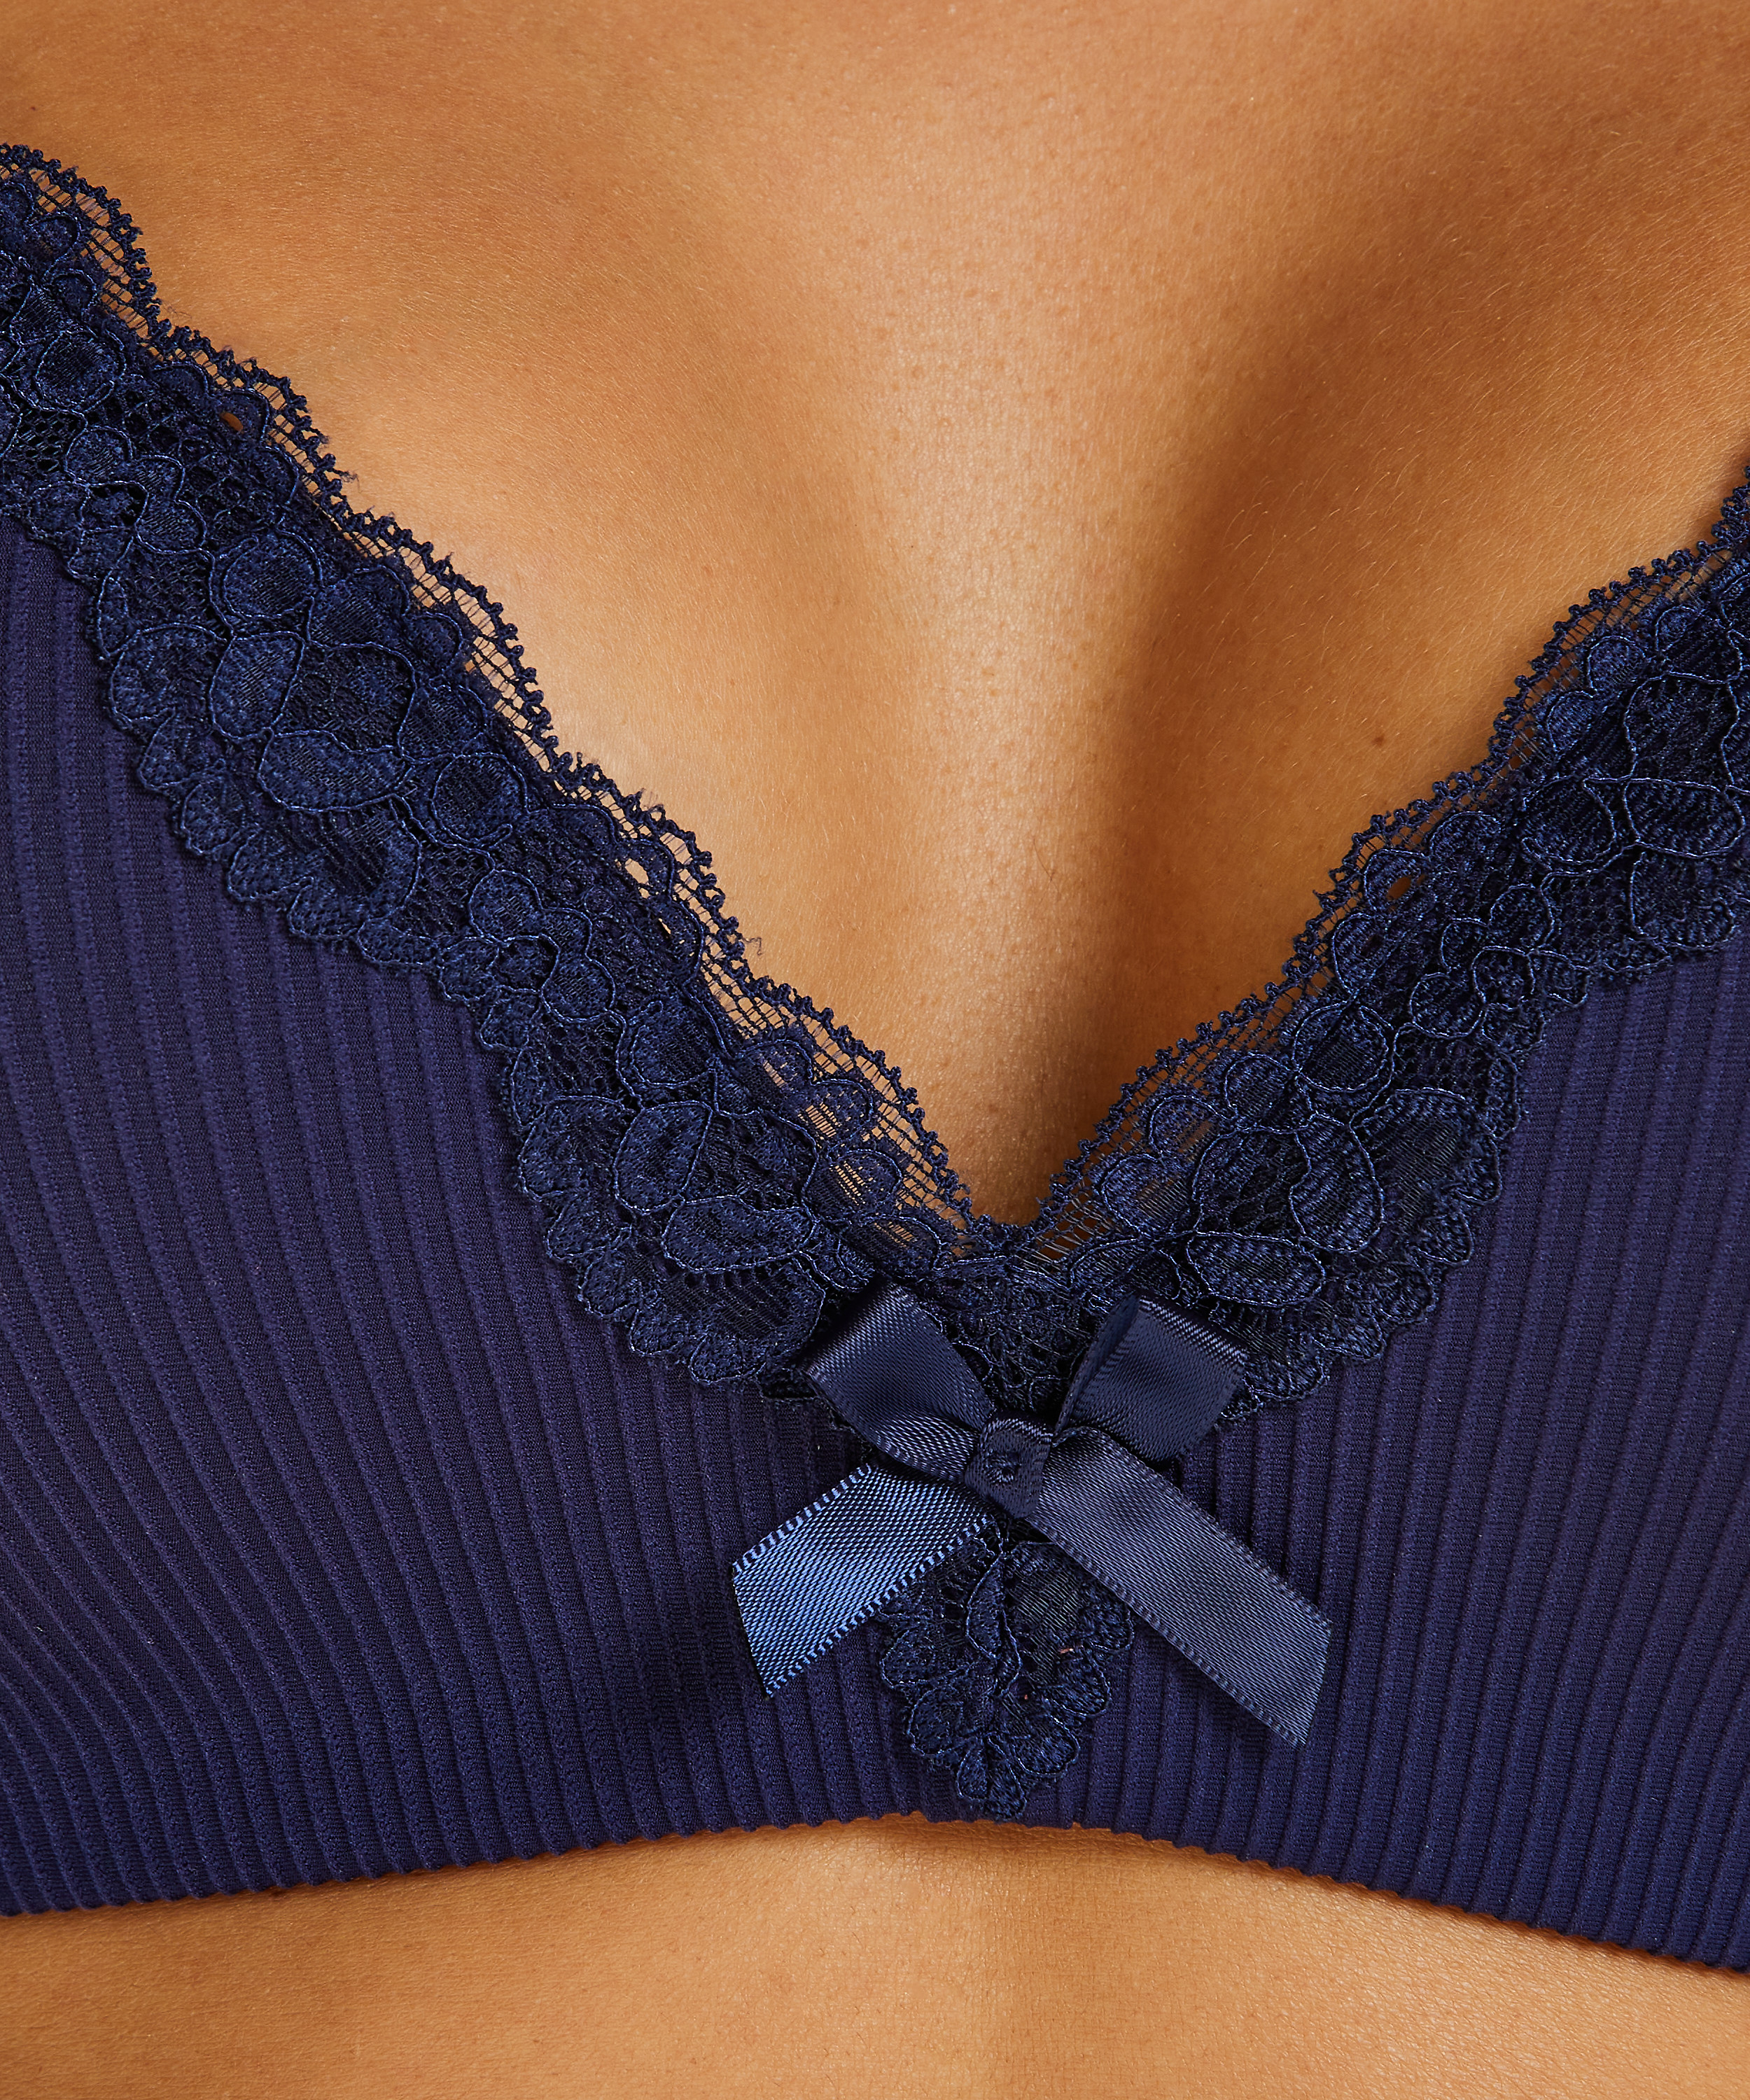 Lola Padded Non-Wired Bra, Blue, main